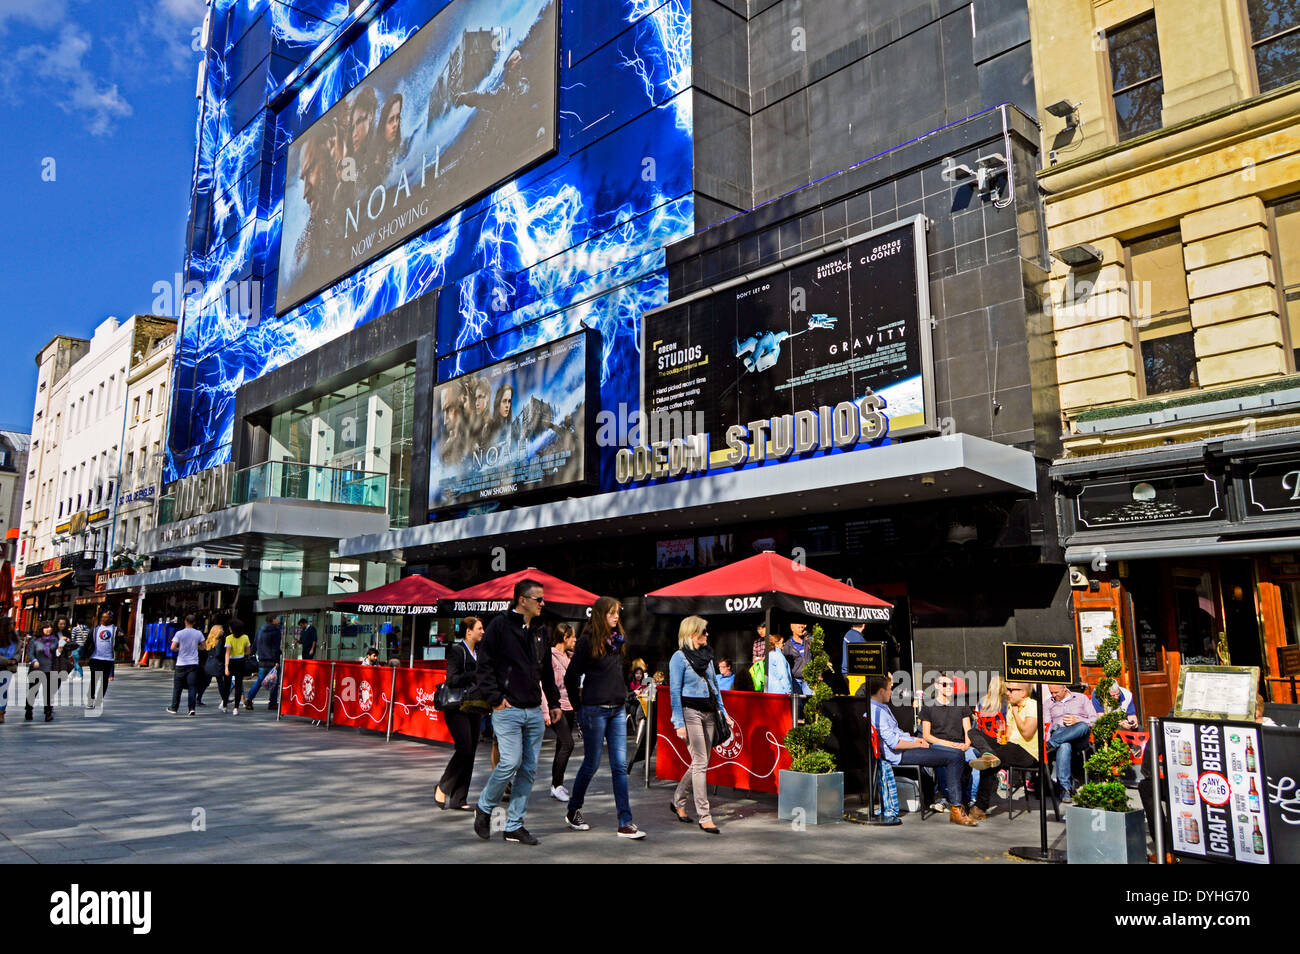 Odeon Cinema, Leicester Square, West End, London, England, United Kingdom - Stock Image